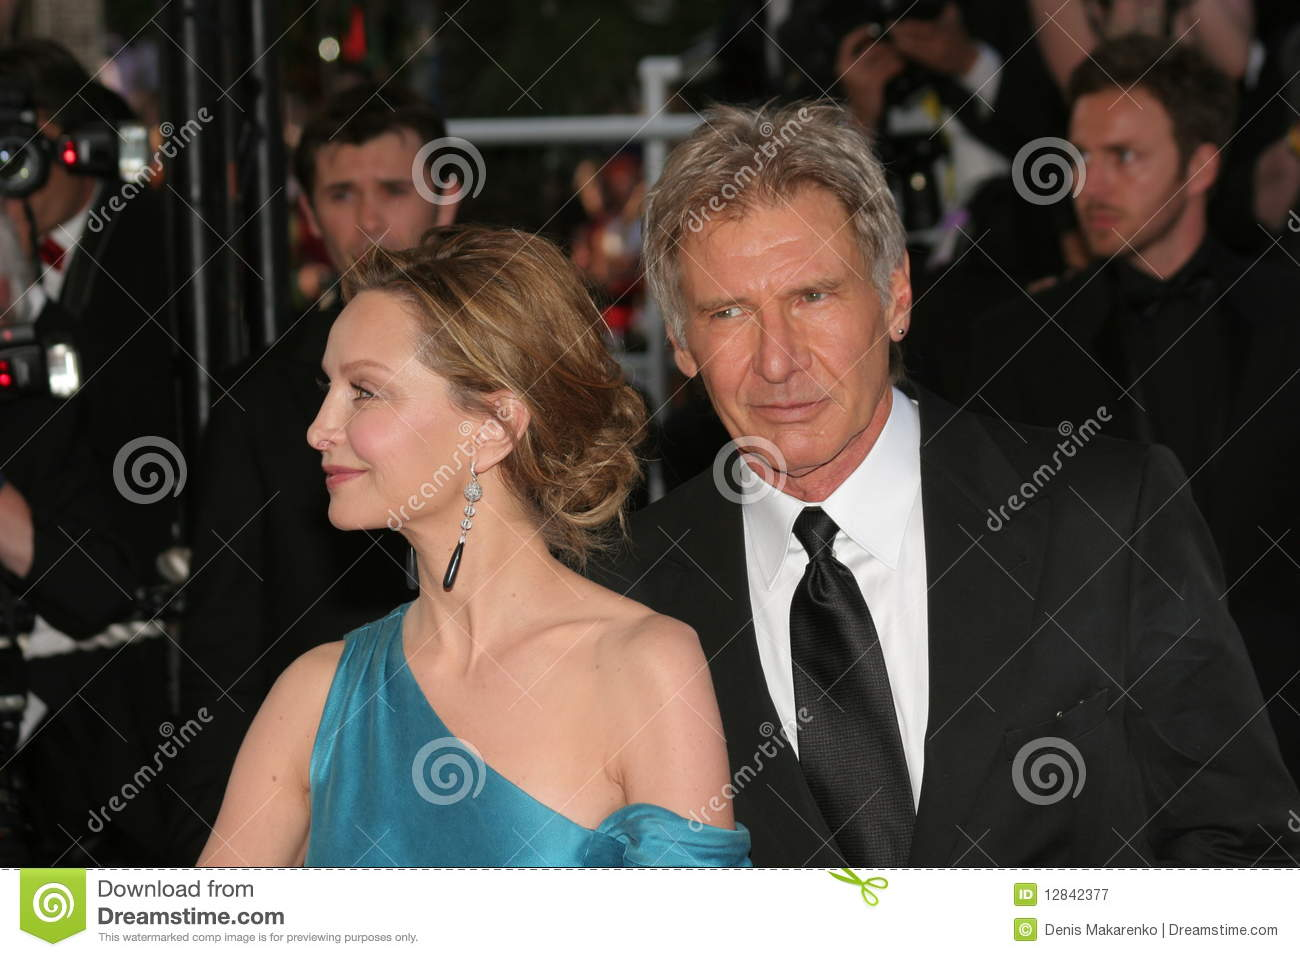 CANNES, FRANCE - MAY 18: Actors Harrison Ford and Calista Flockhart